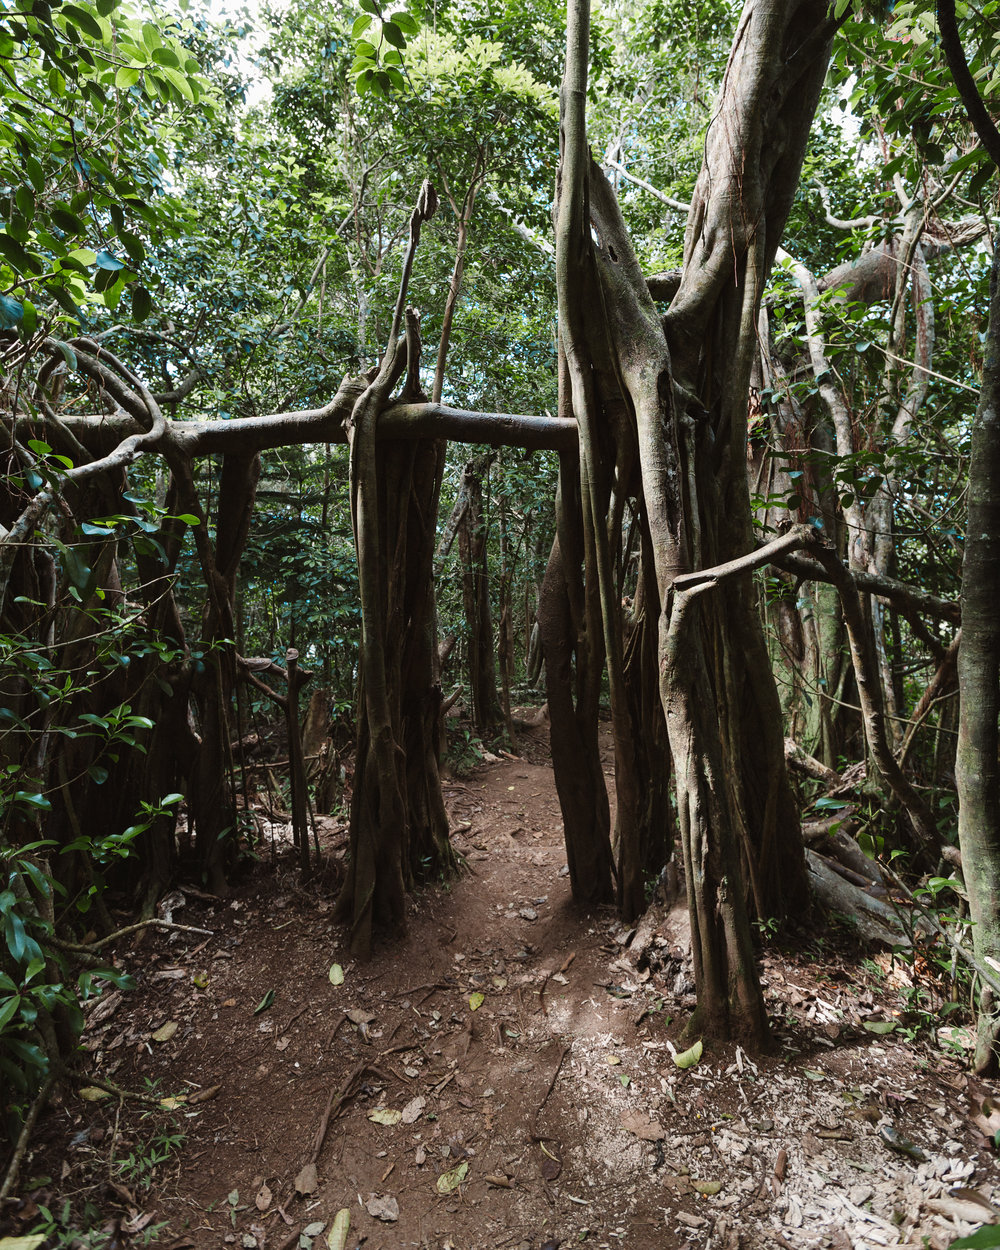 One of my favourite features of the trail: a doorway made of tree roots.